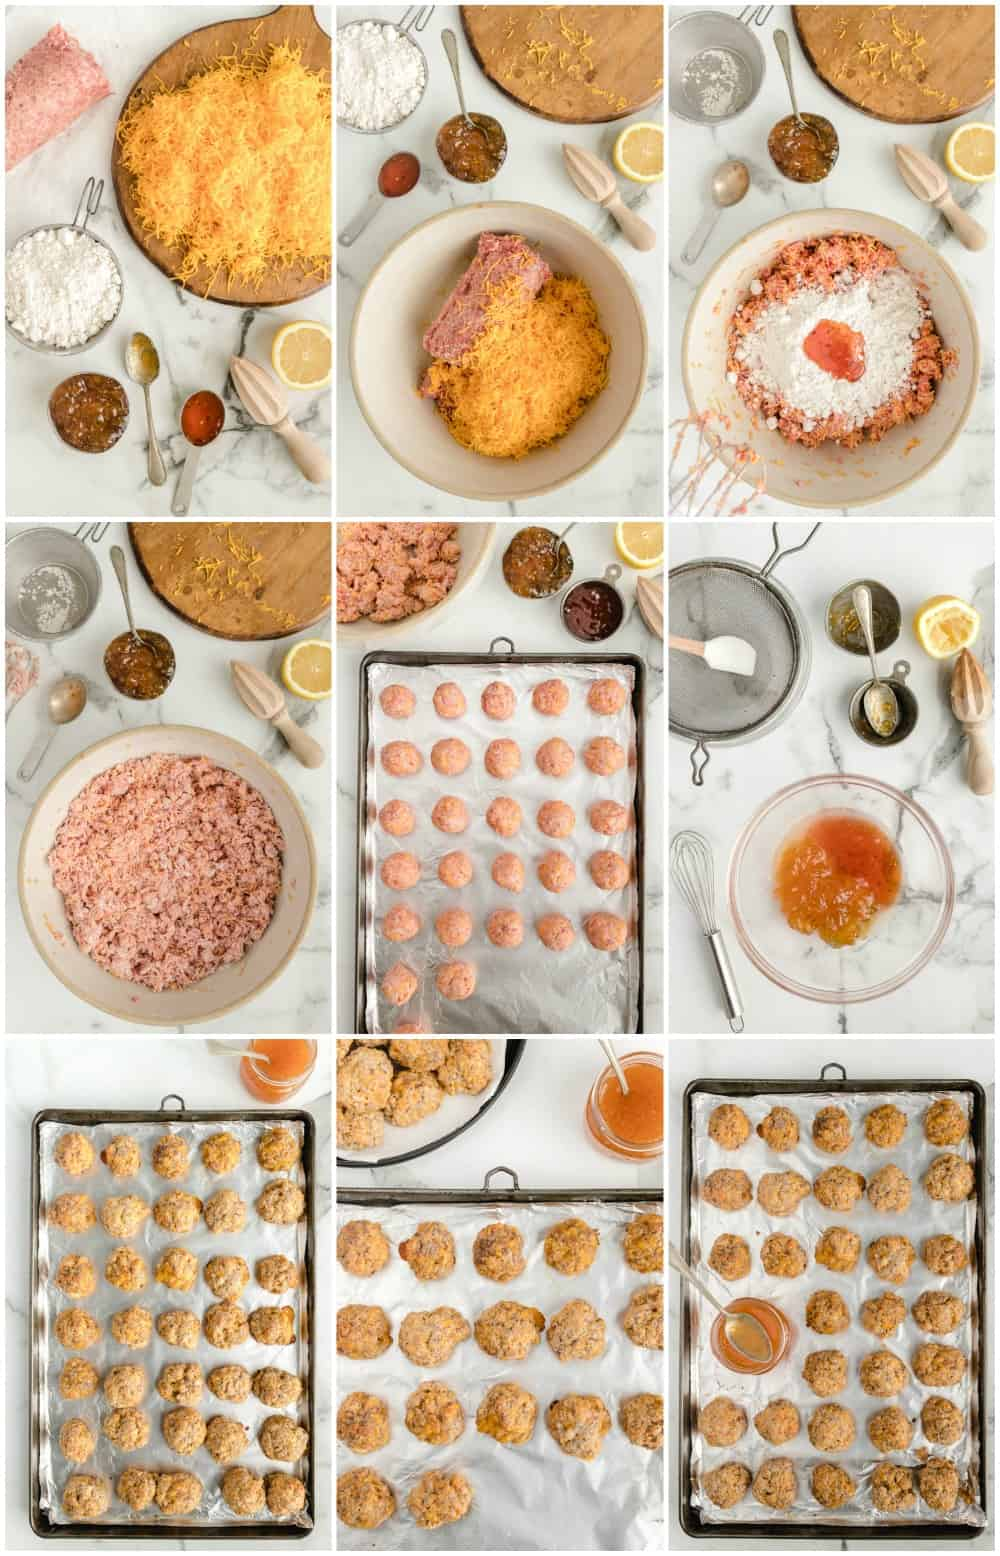 how to make bisquick sausage balls: step by step photos of making sausage balls